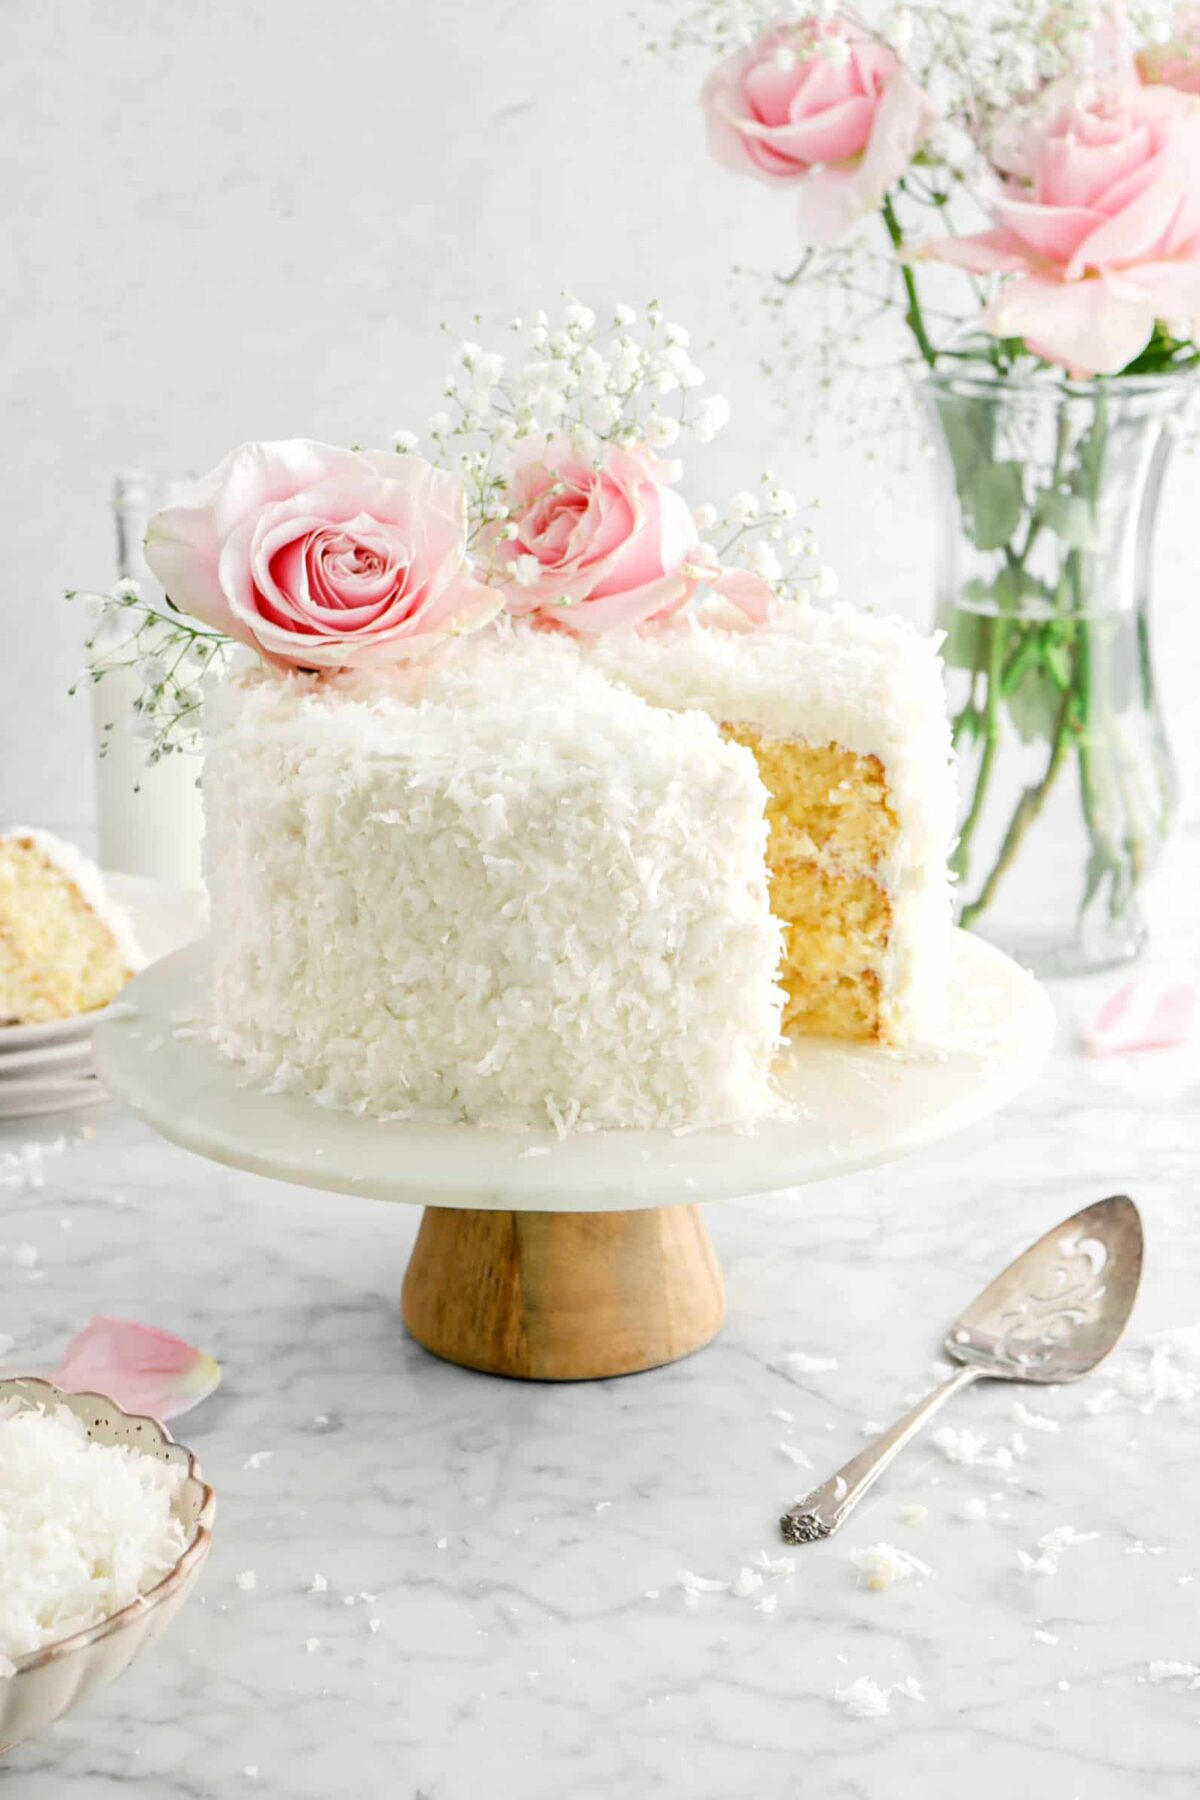 coconut cake with slice behind, roses on top and behind the cake, a bowl of shredded coconut in front, and a cake knife